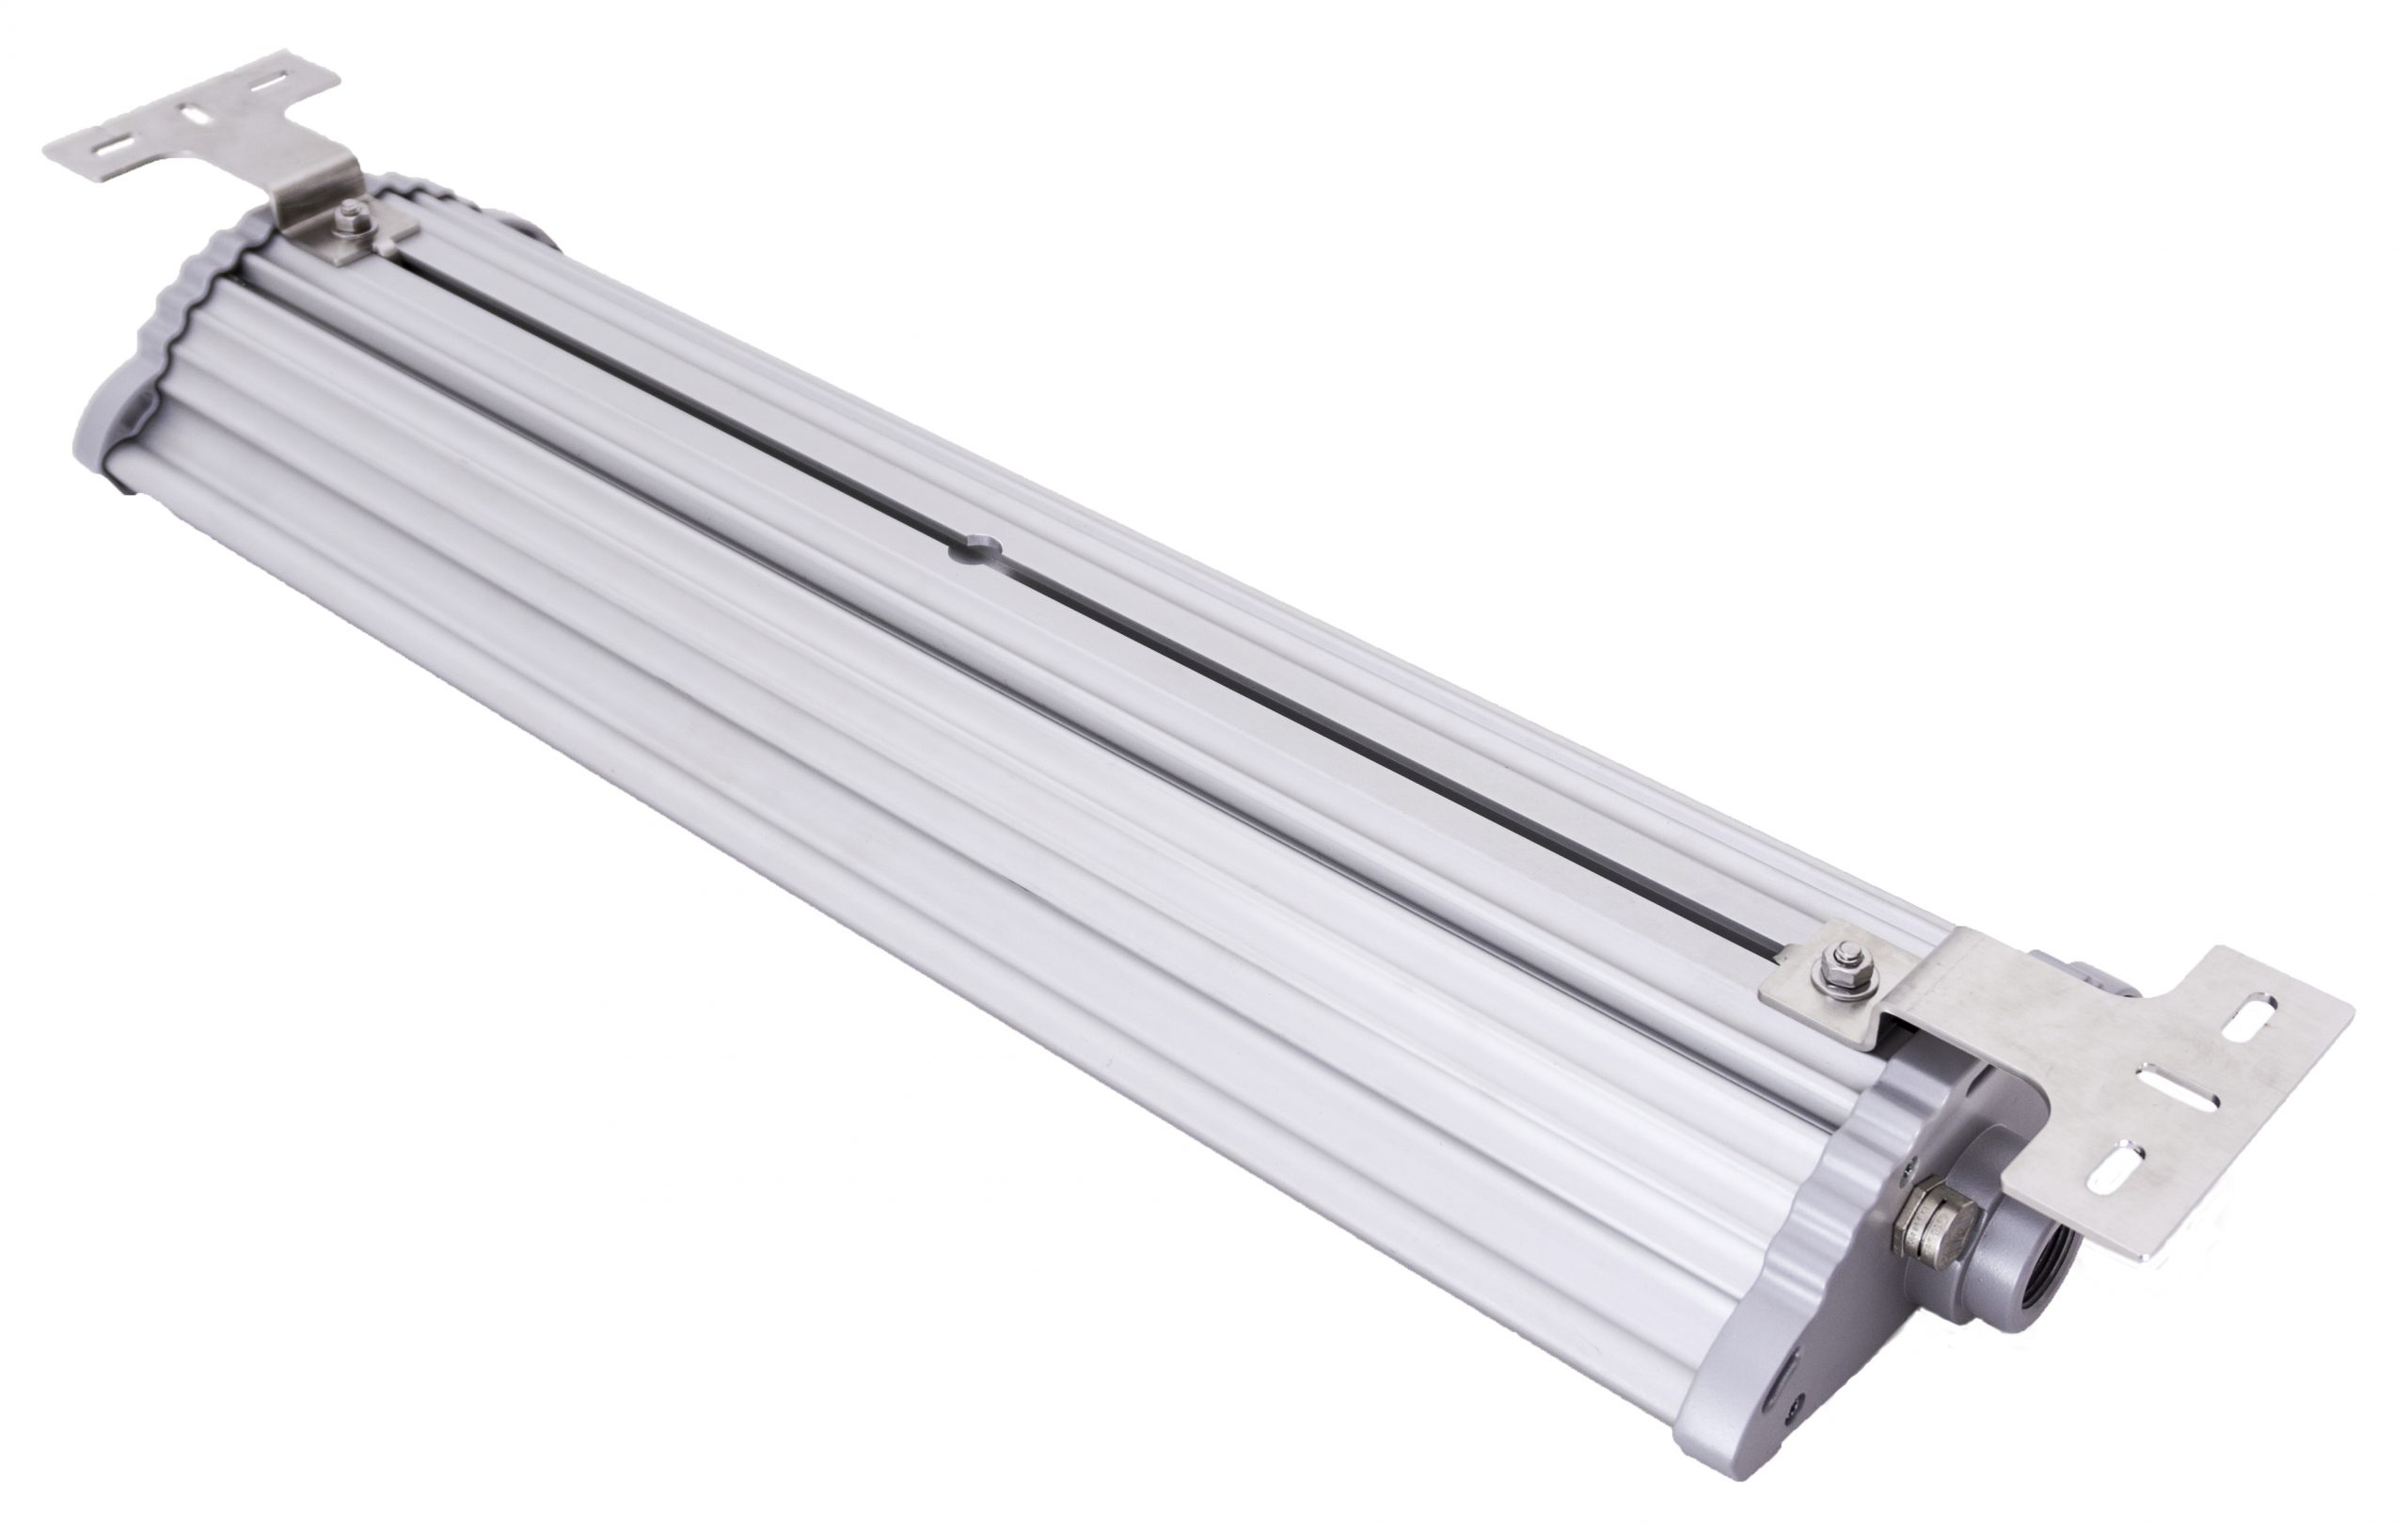 Surface mount Nemalux NL series linear industrial LED luminaire, IP66, marine and hazardous location class I div 2 (c1d2) approved and replacement for linear fluorescent light fixtures